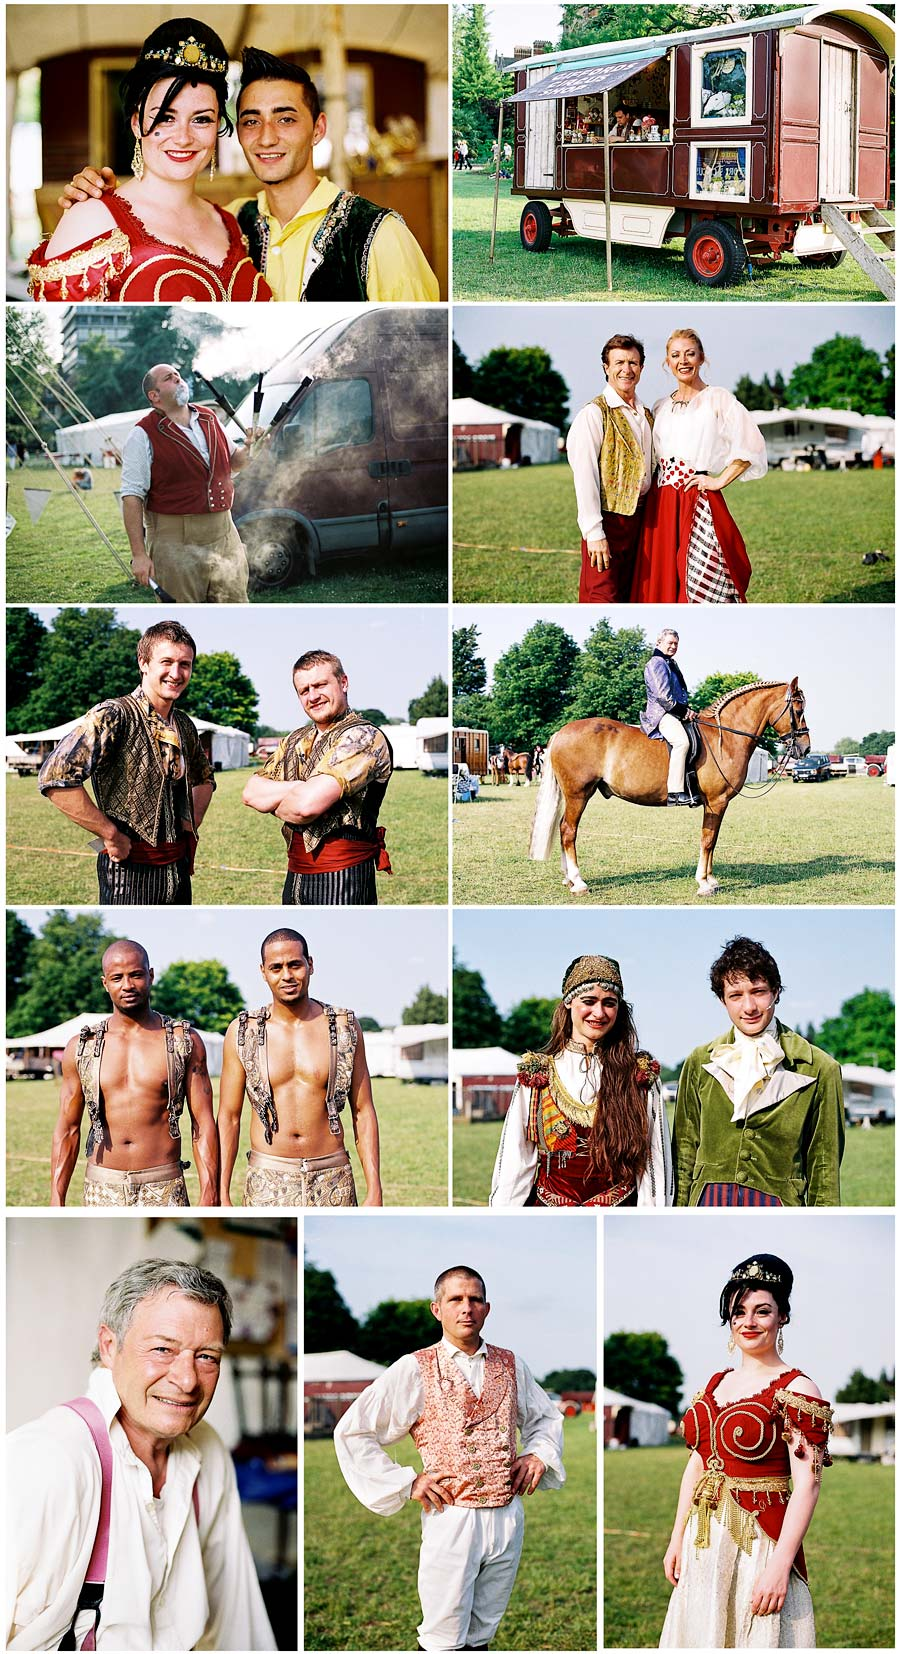 Giffords Circus performers backstage, University Parks, Oxford.